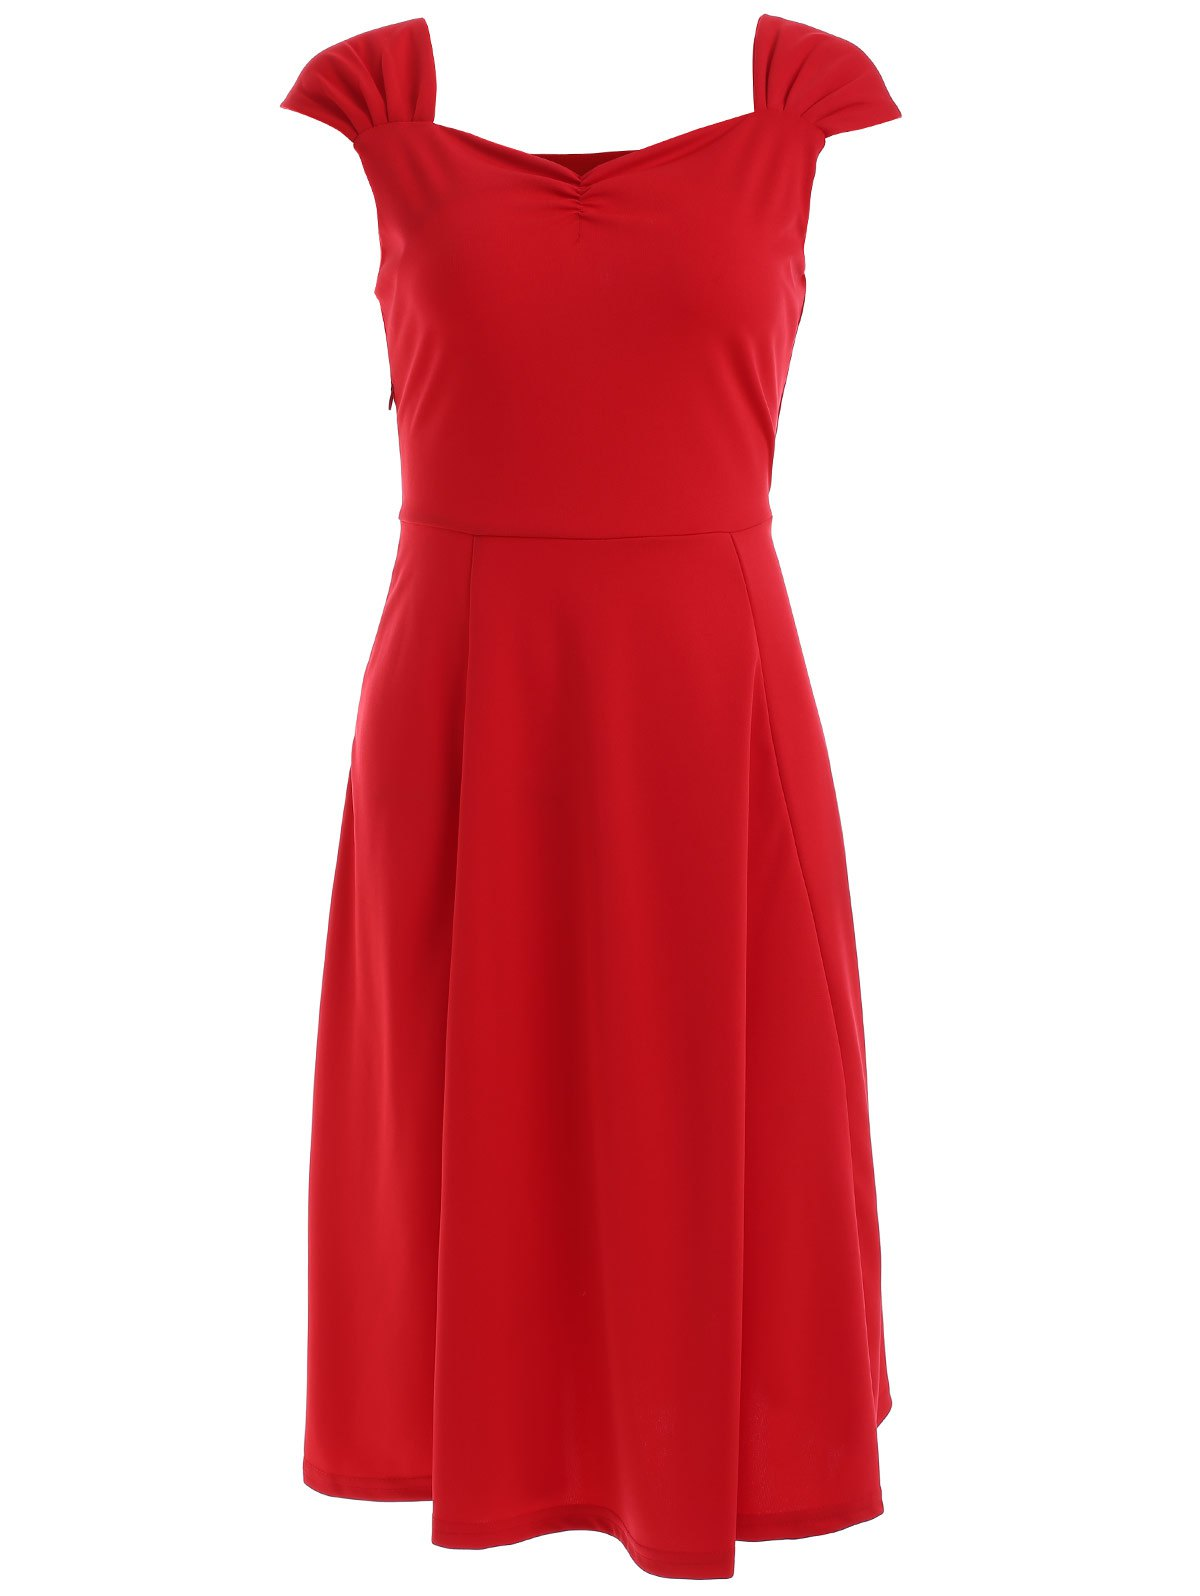 Vintage Sleeveless Solid Color Sweetheart Neck Dress For Women